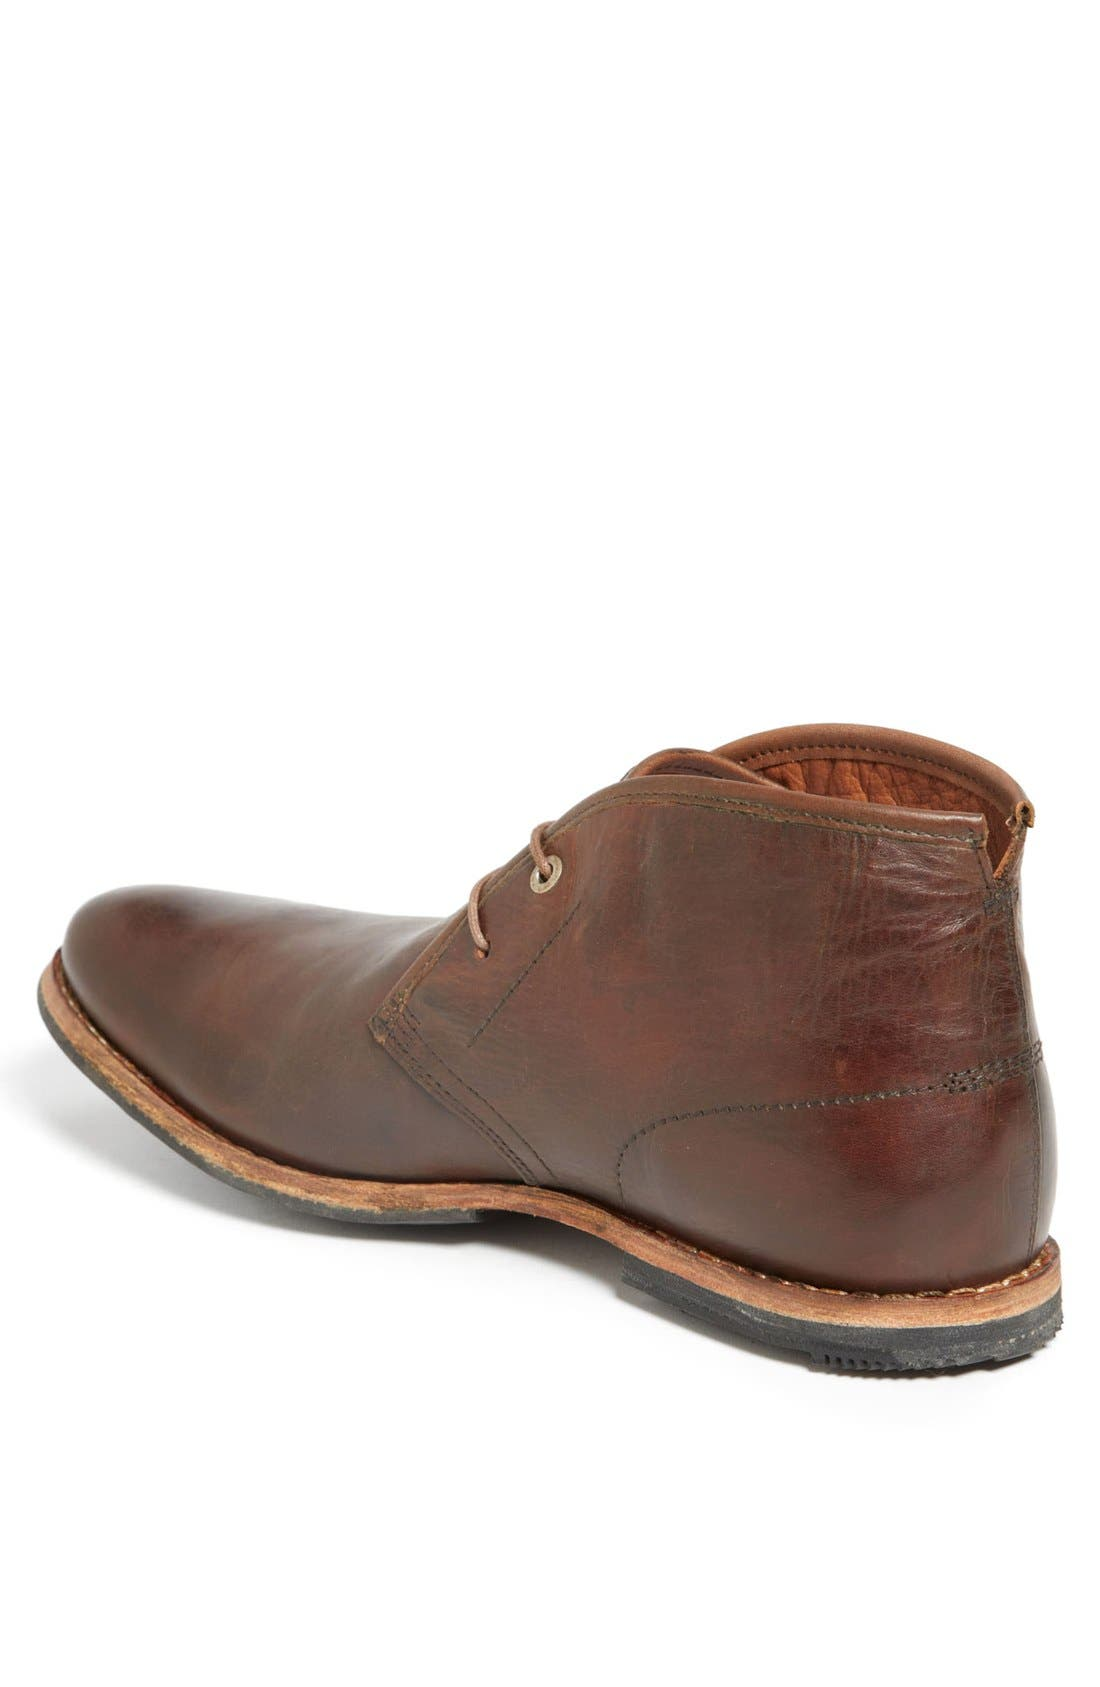 Wodehouse Lost History Chukka Boot,                             Alternate thumbnail 7, color,                             BURNISHED DARK BROWN LEATHER